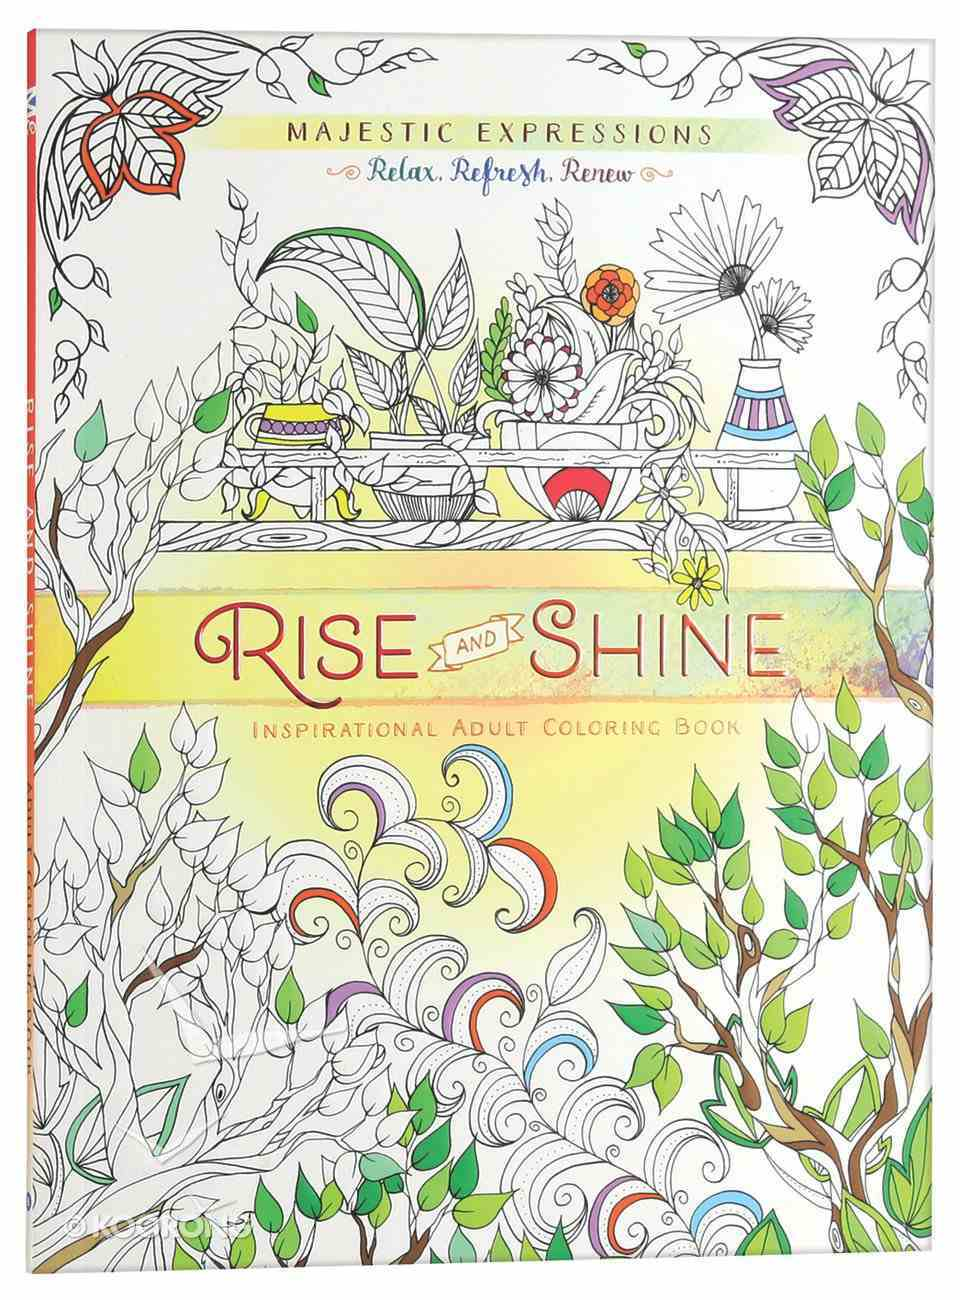 Rise and Shine (Majestic Expressions) (Adult Coloring Books Series) Paperback